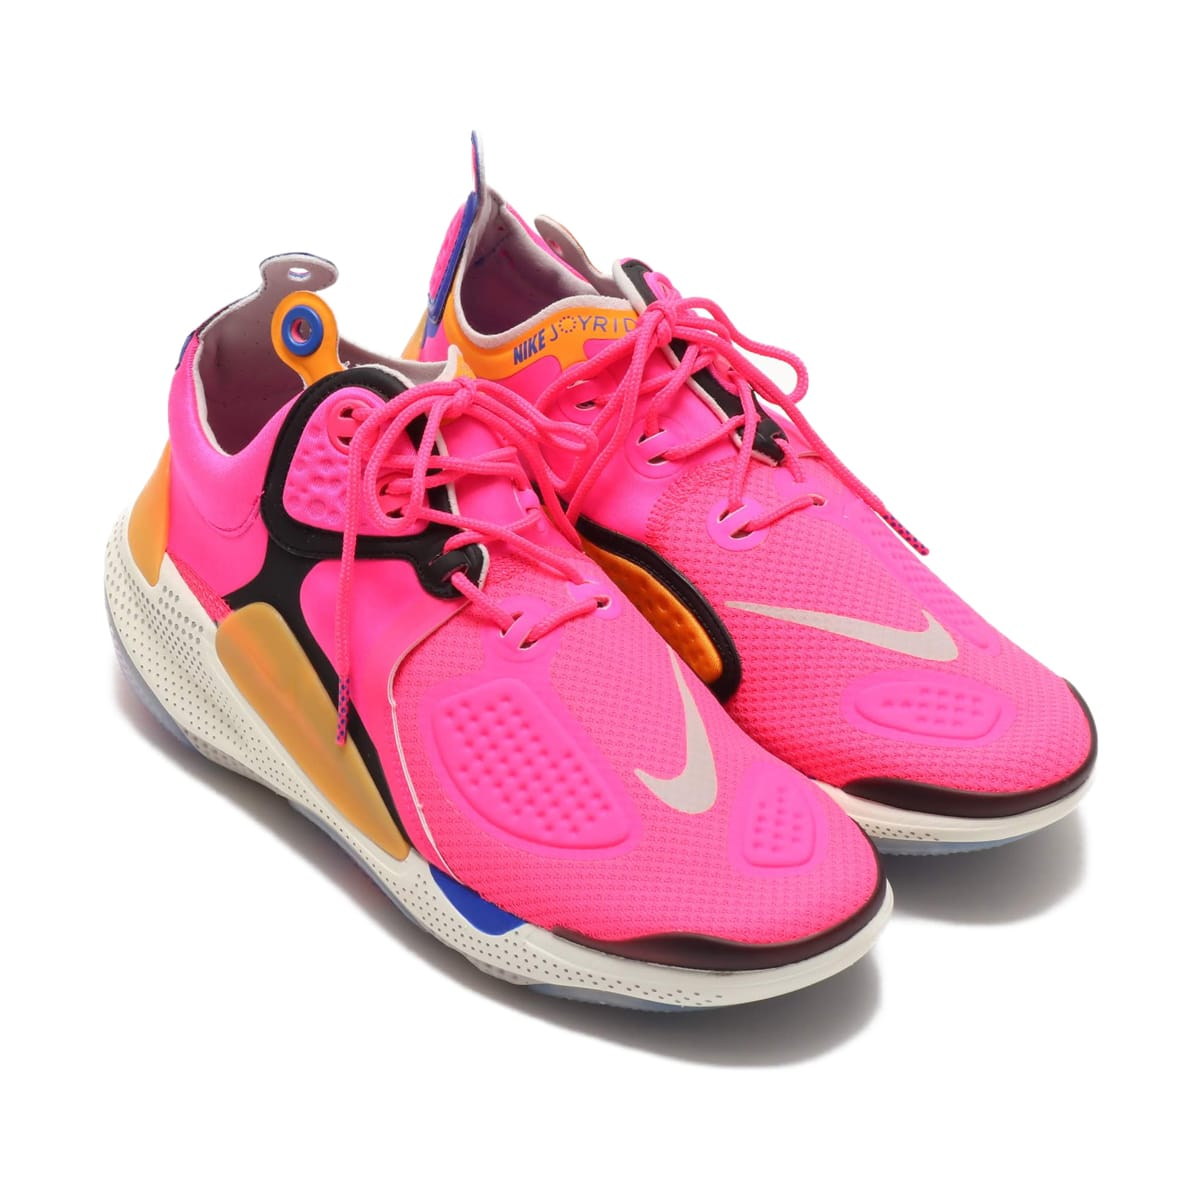 NIKE JOYRIDE CC3 SETTER HYPER PINK/KUMQUAT-BLACK-RACER BLUE 19FA-S_photo_large